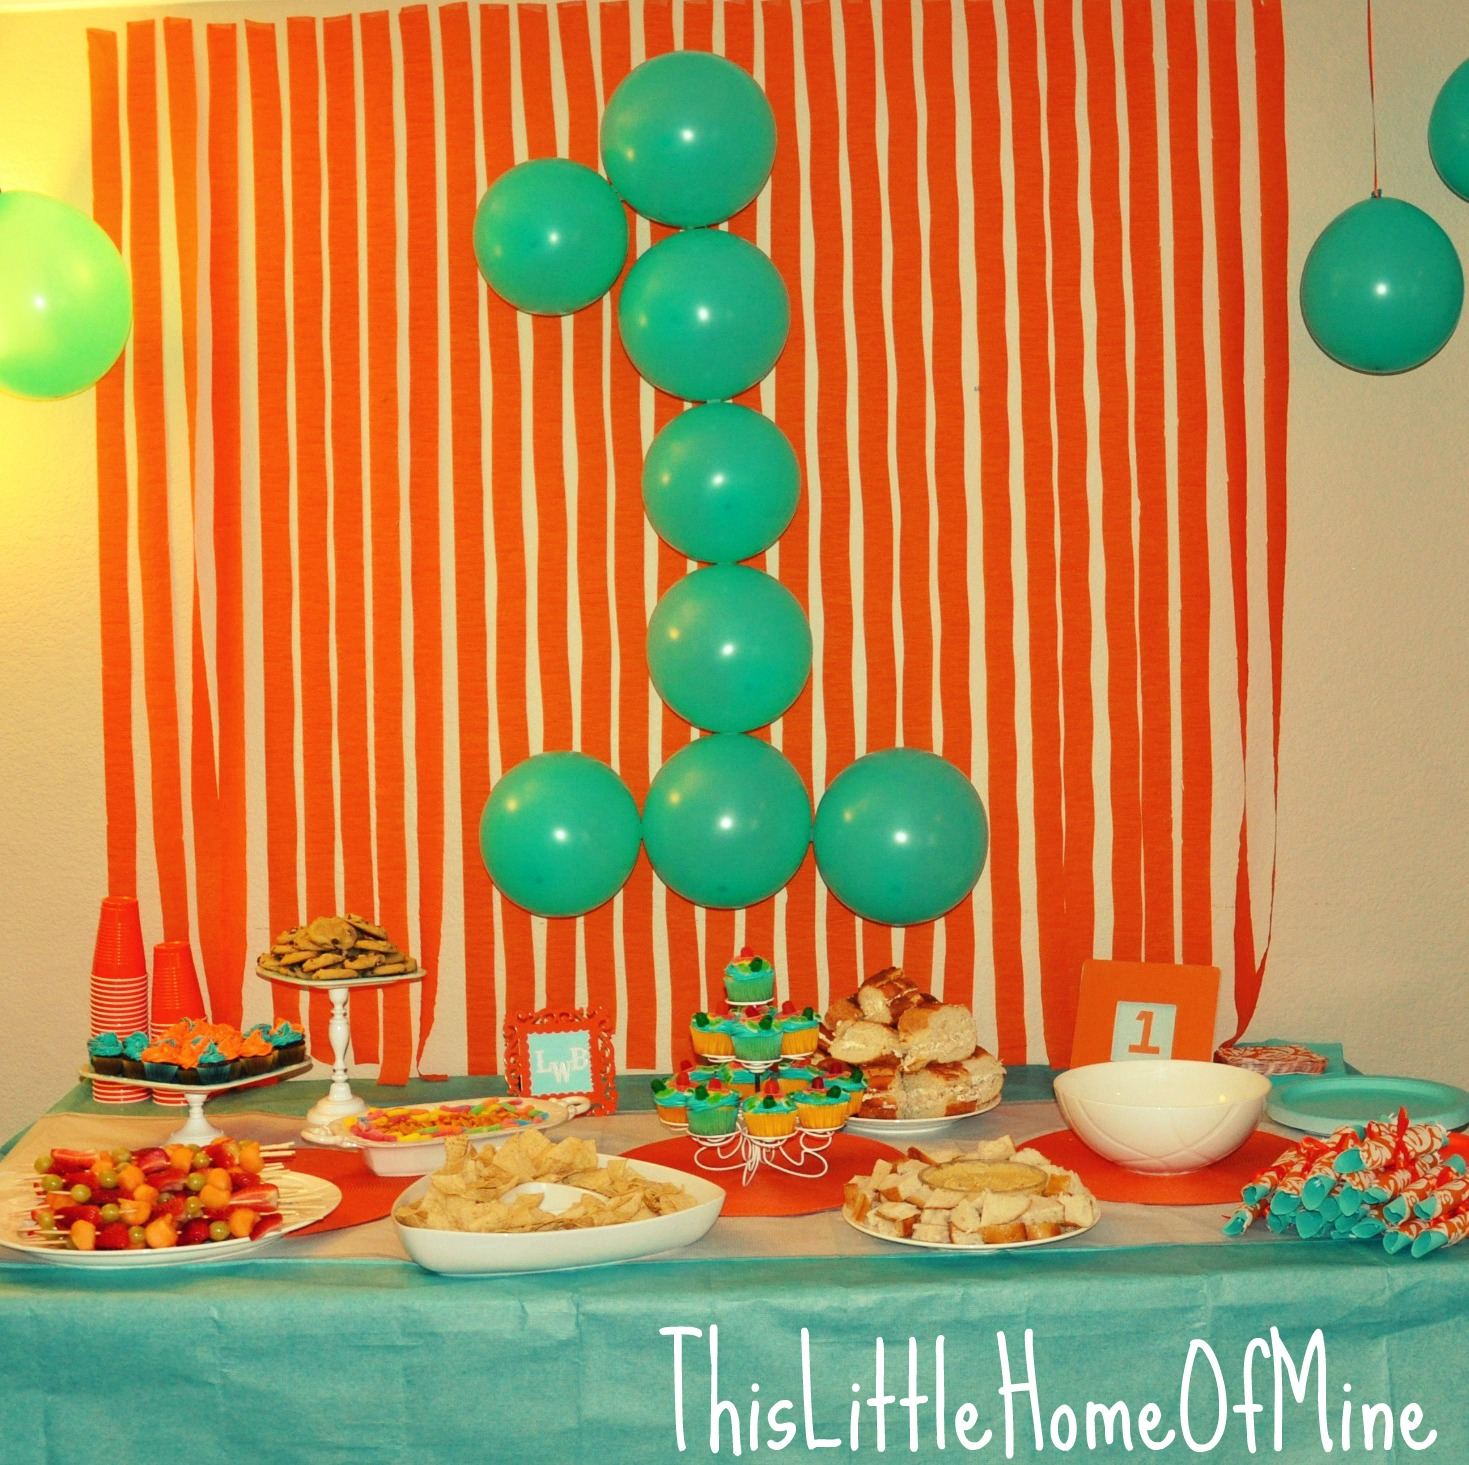 Simple Birthday Decoration Ideas At Home For Husband This little home ...